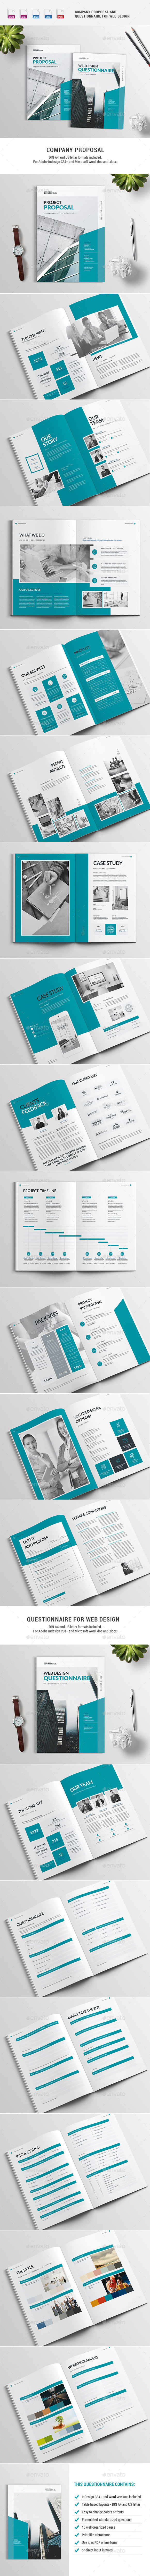 Proposal and Questionnaire - Brochures Print Templates